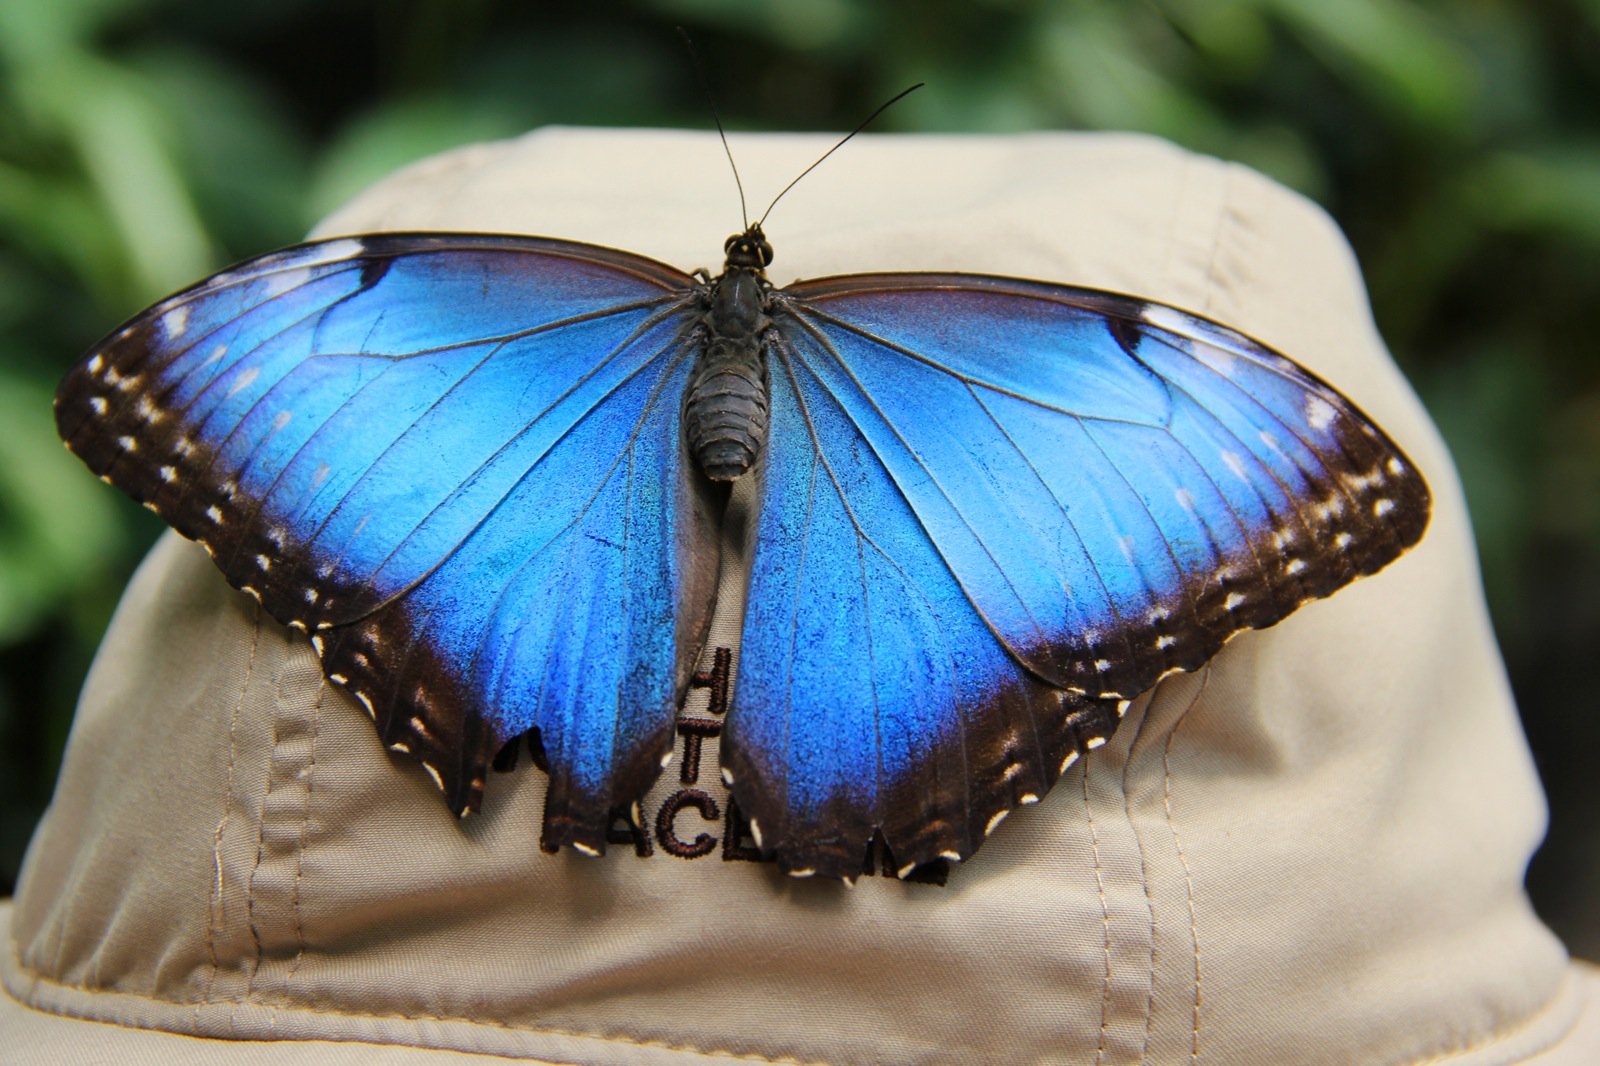 Close-up of a Blue Morpho butterfly on a woman's hat.